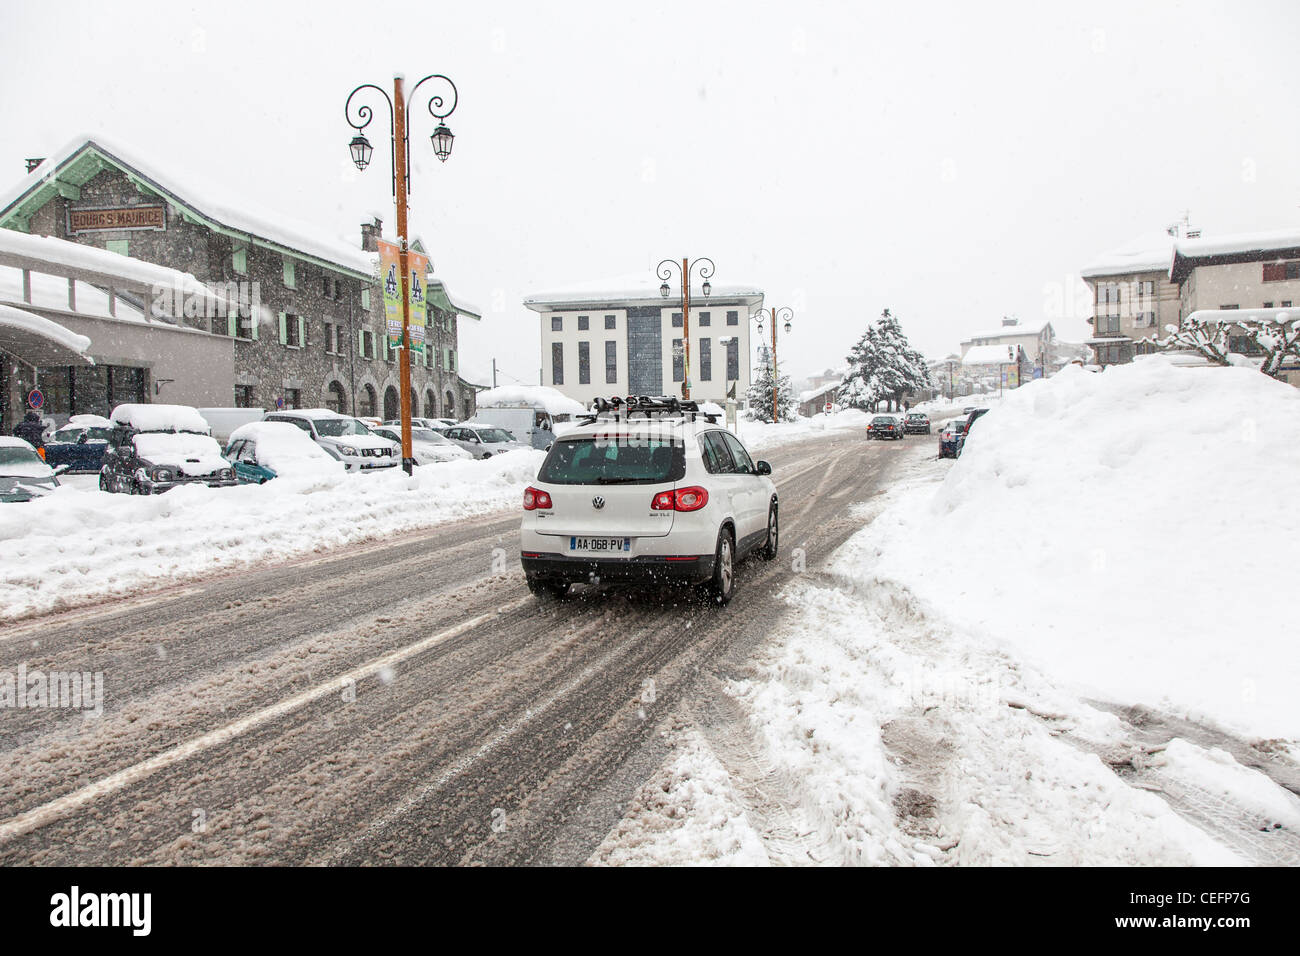 Cars driving along a road in bad snowing weather conditions, Bourg St Maurice, France - Stock Image